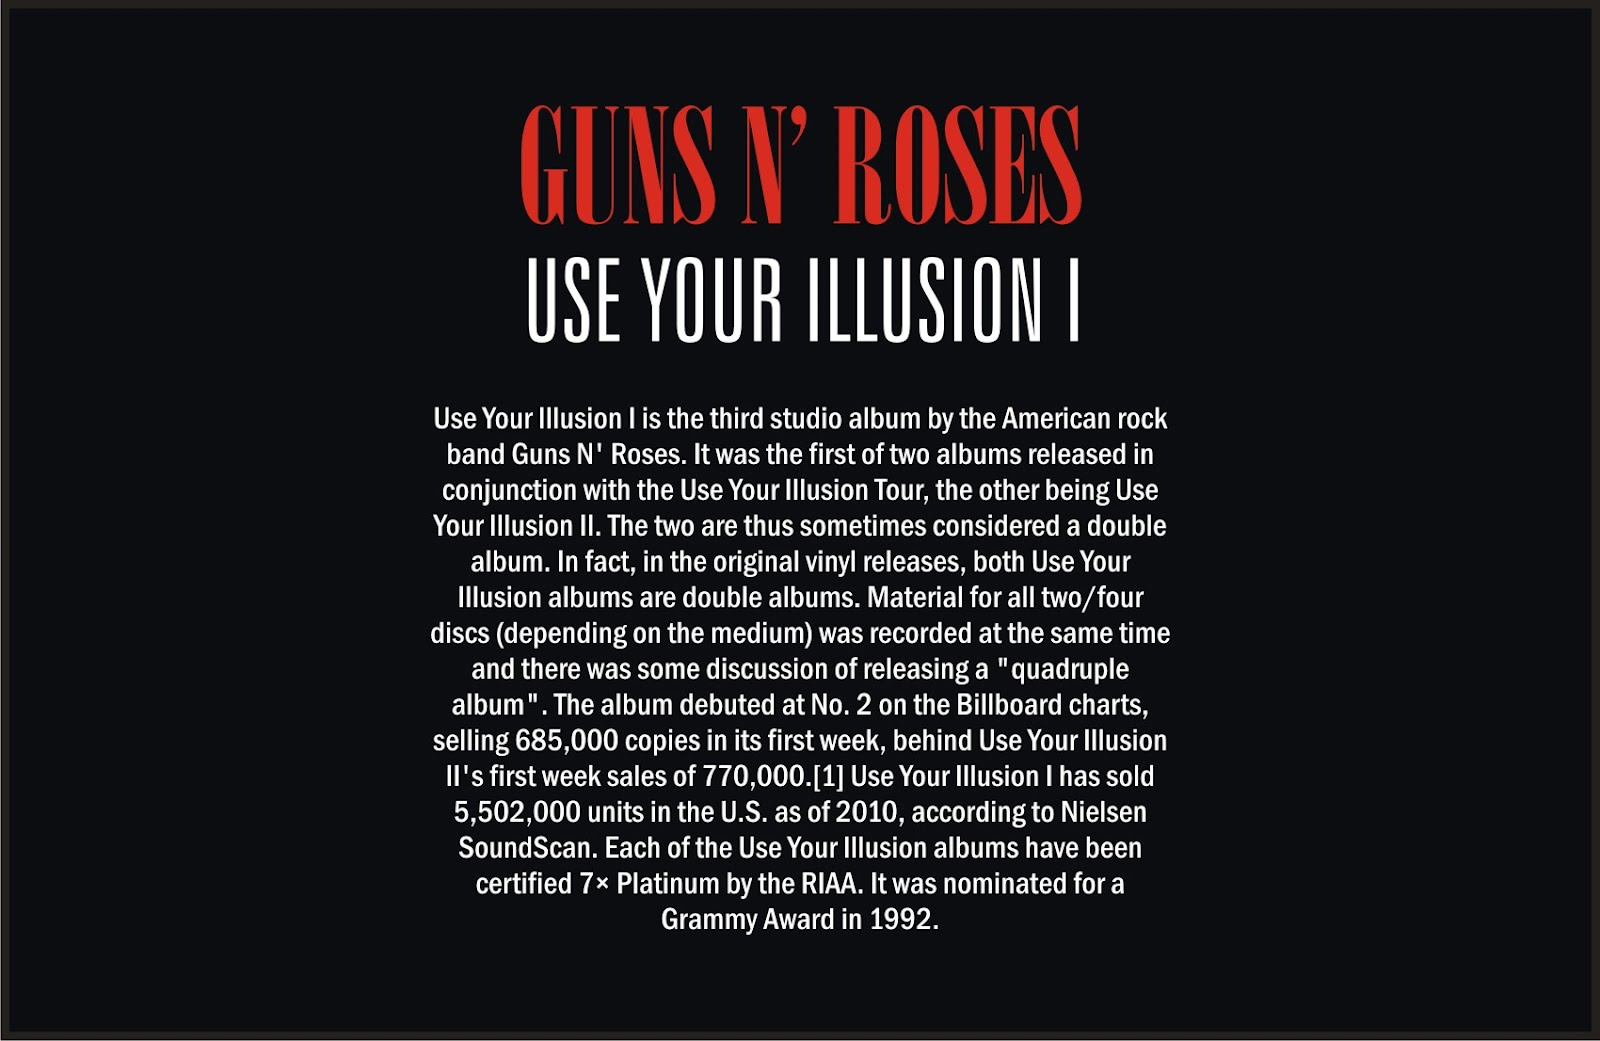 🔥 Guns N' Roses - Use Your Illusion II 1991 FLAC MP3